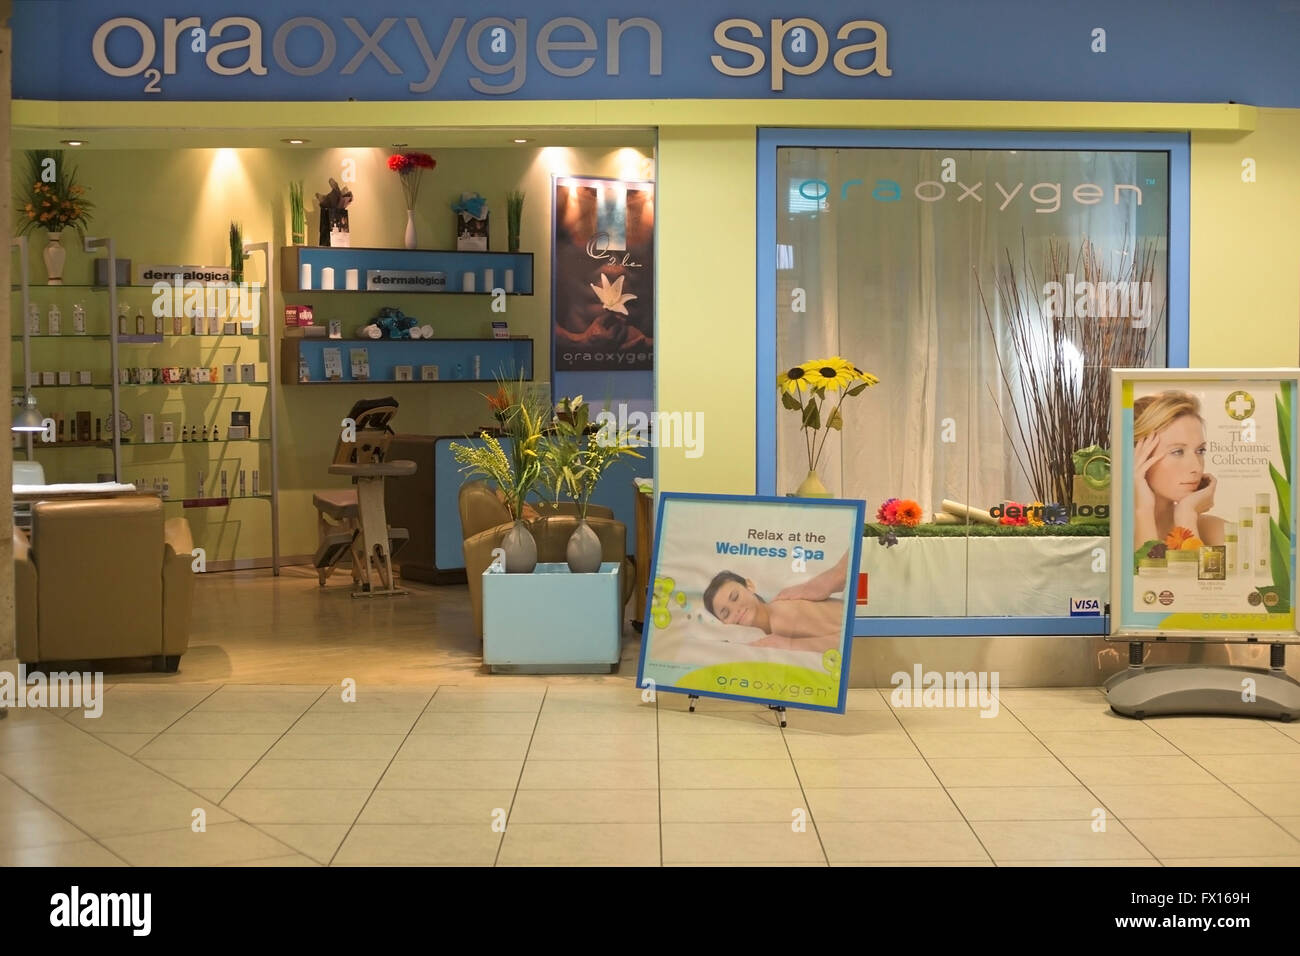 Oxygen spa in airport - Stock Image